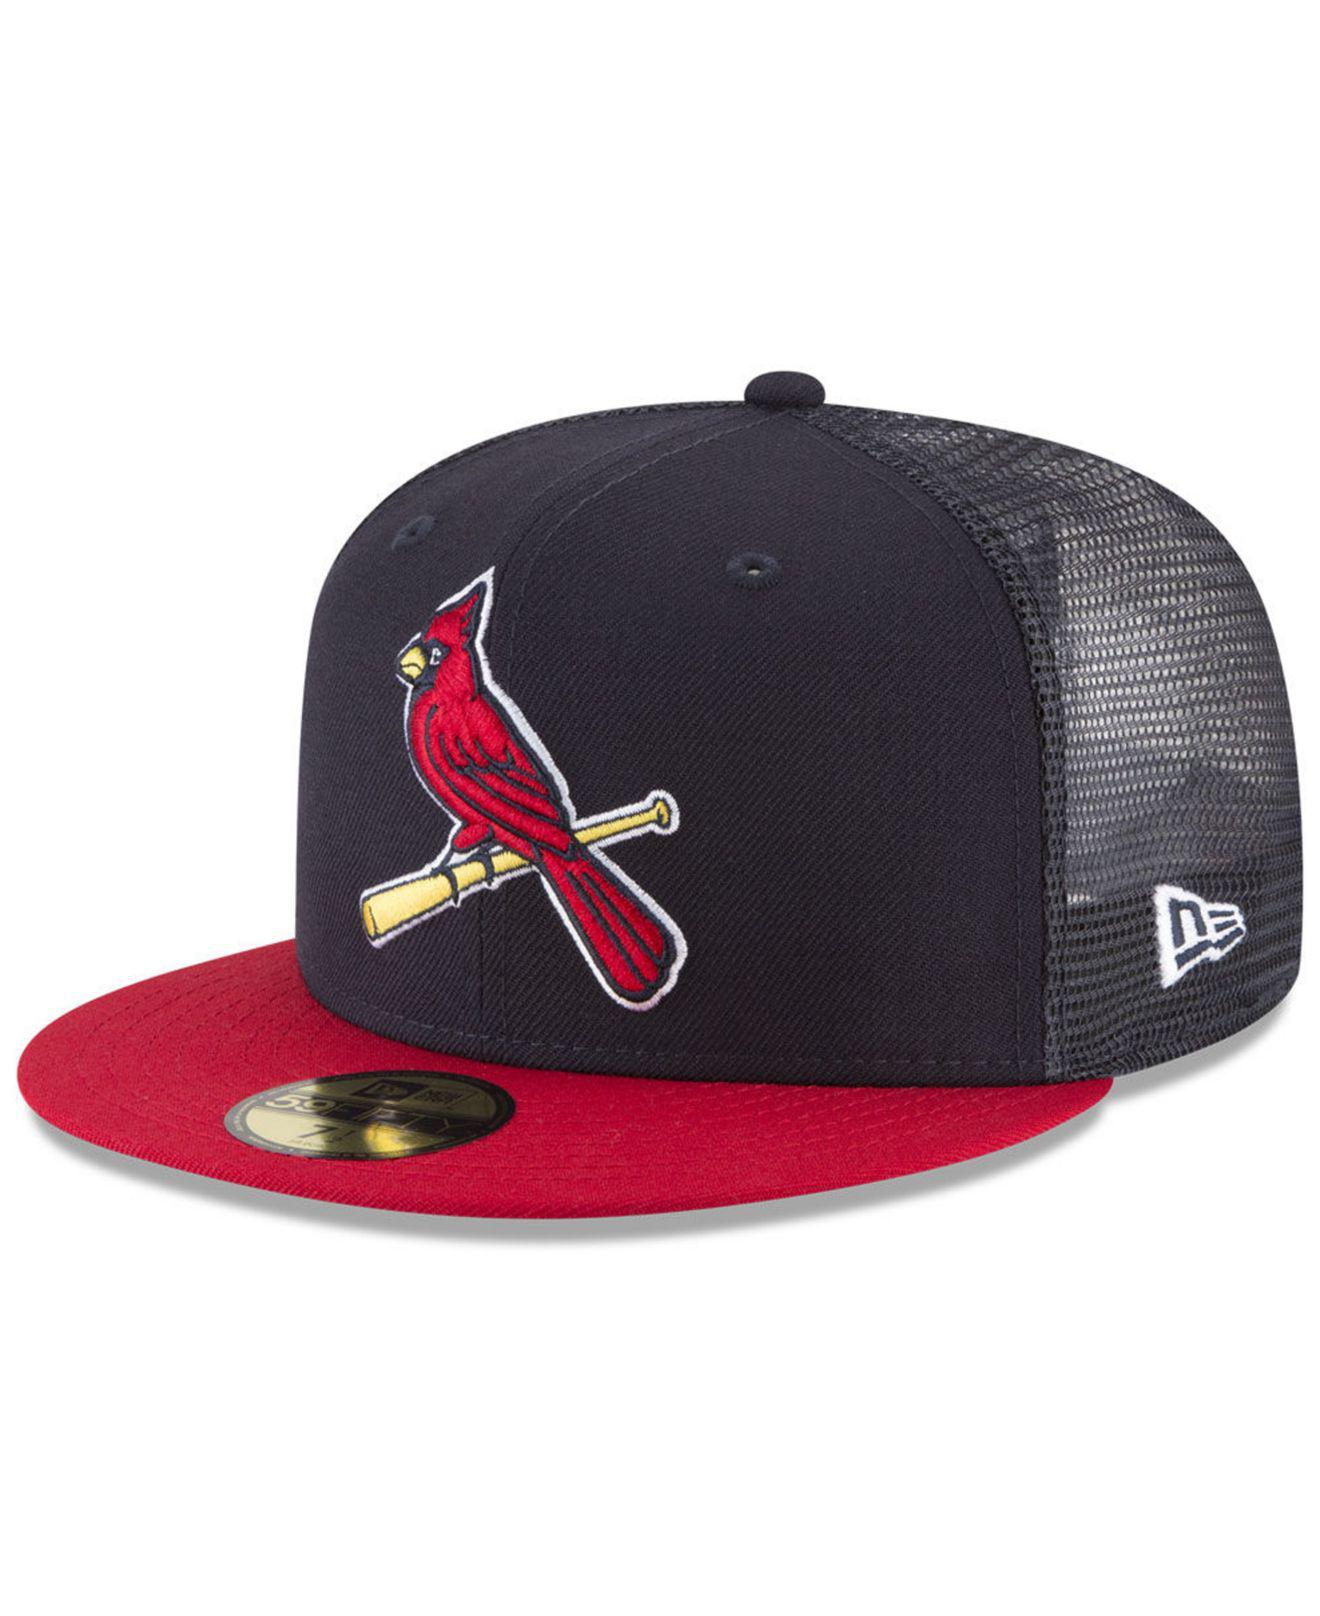 sale retailer e08b0 4f0db ... new era st. louis cardinals charcoal classic 39thirty cap 6f660 ecc5e   purchase ktz. mens blue st. louis cardinals on field mesh back 59fifty fitted  cap